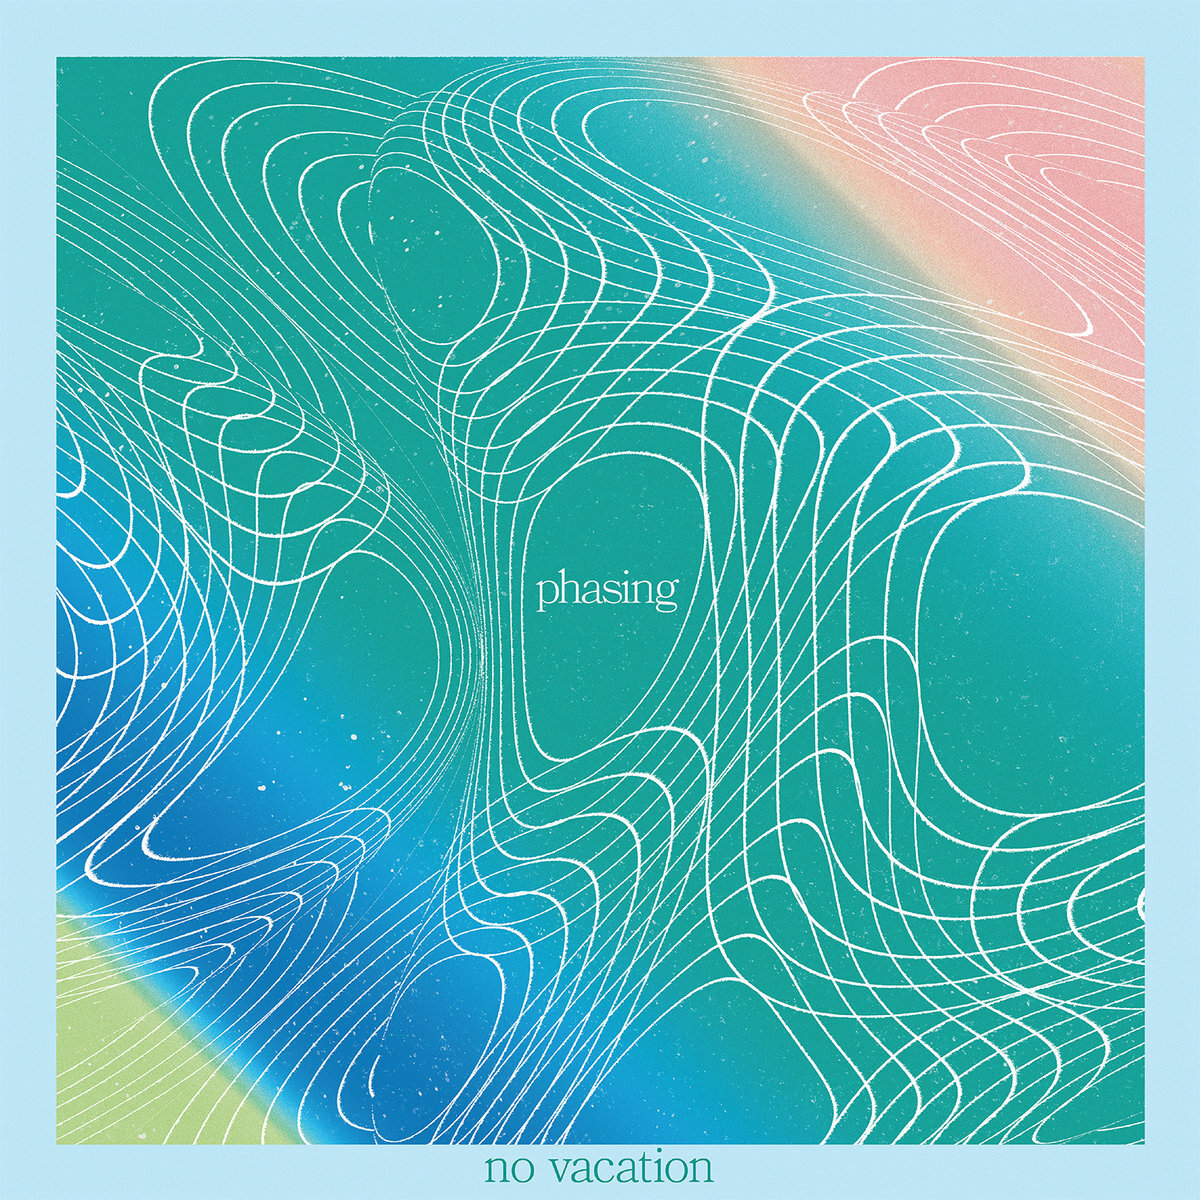 No Vacation / Phasing(500 Ltd 12inch EP)